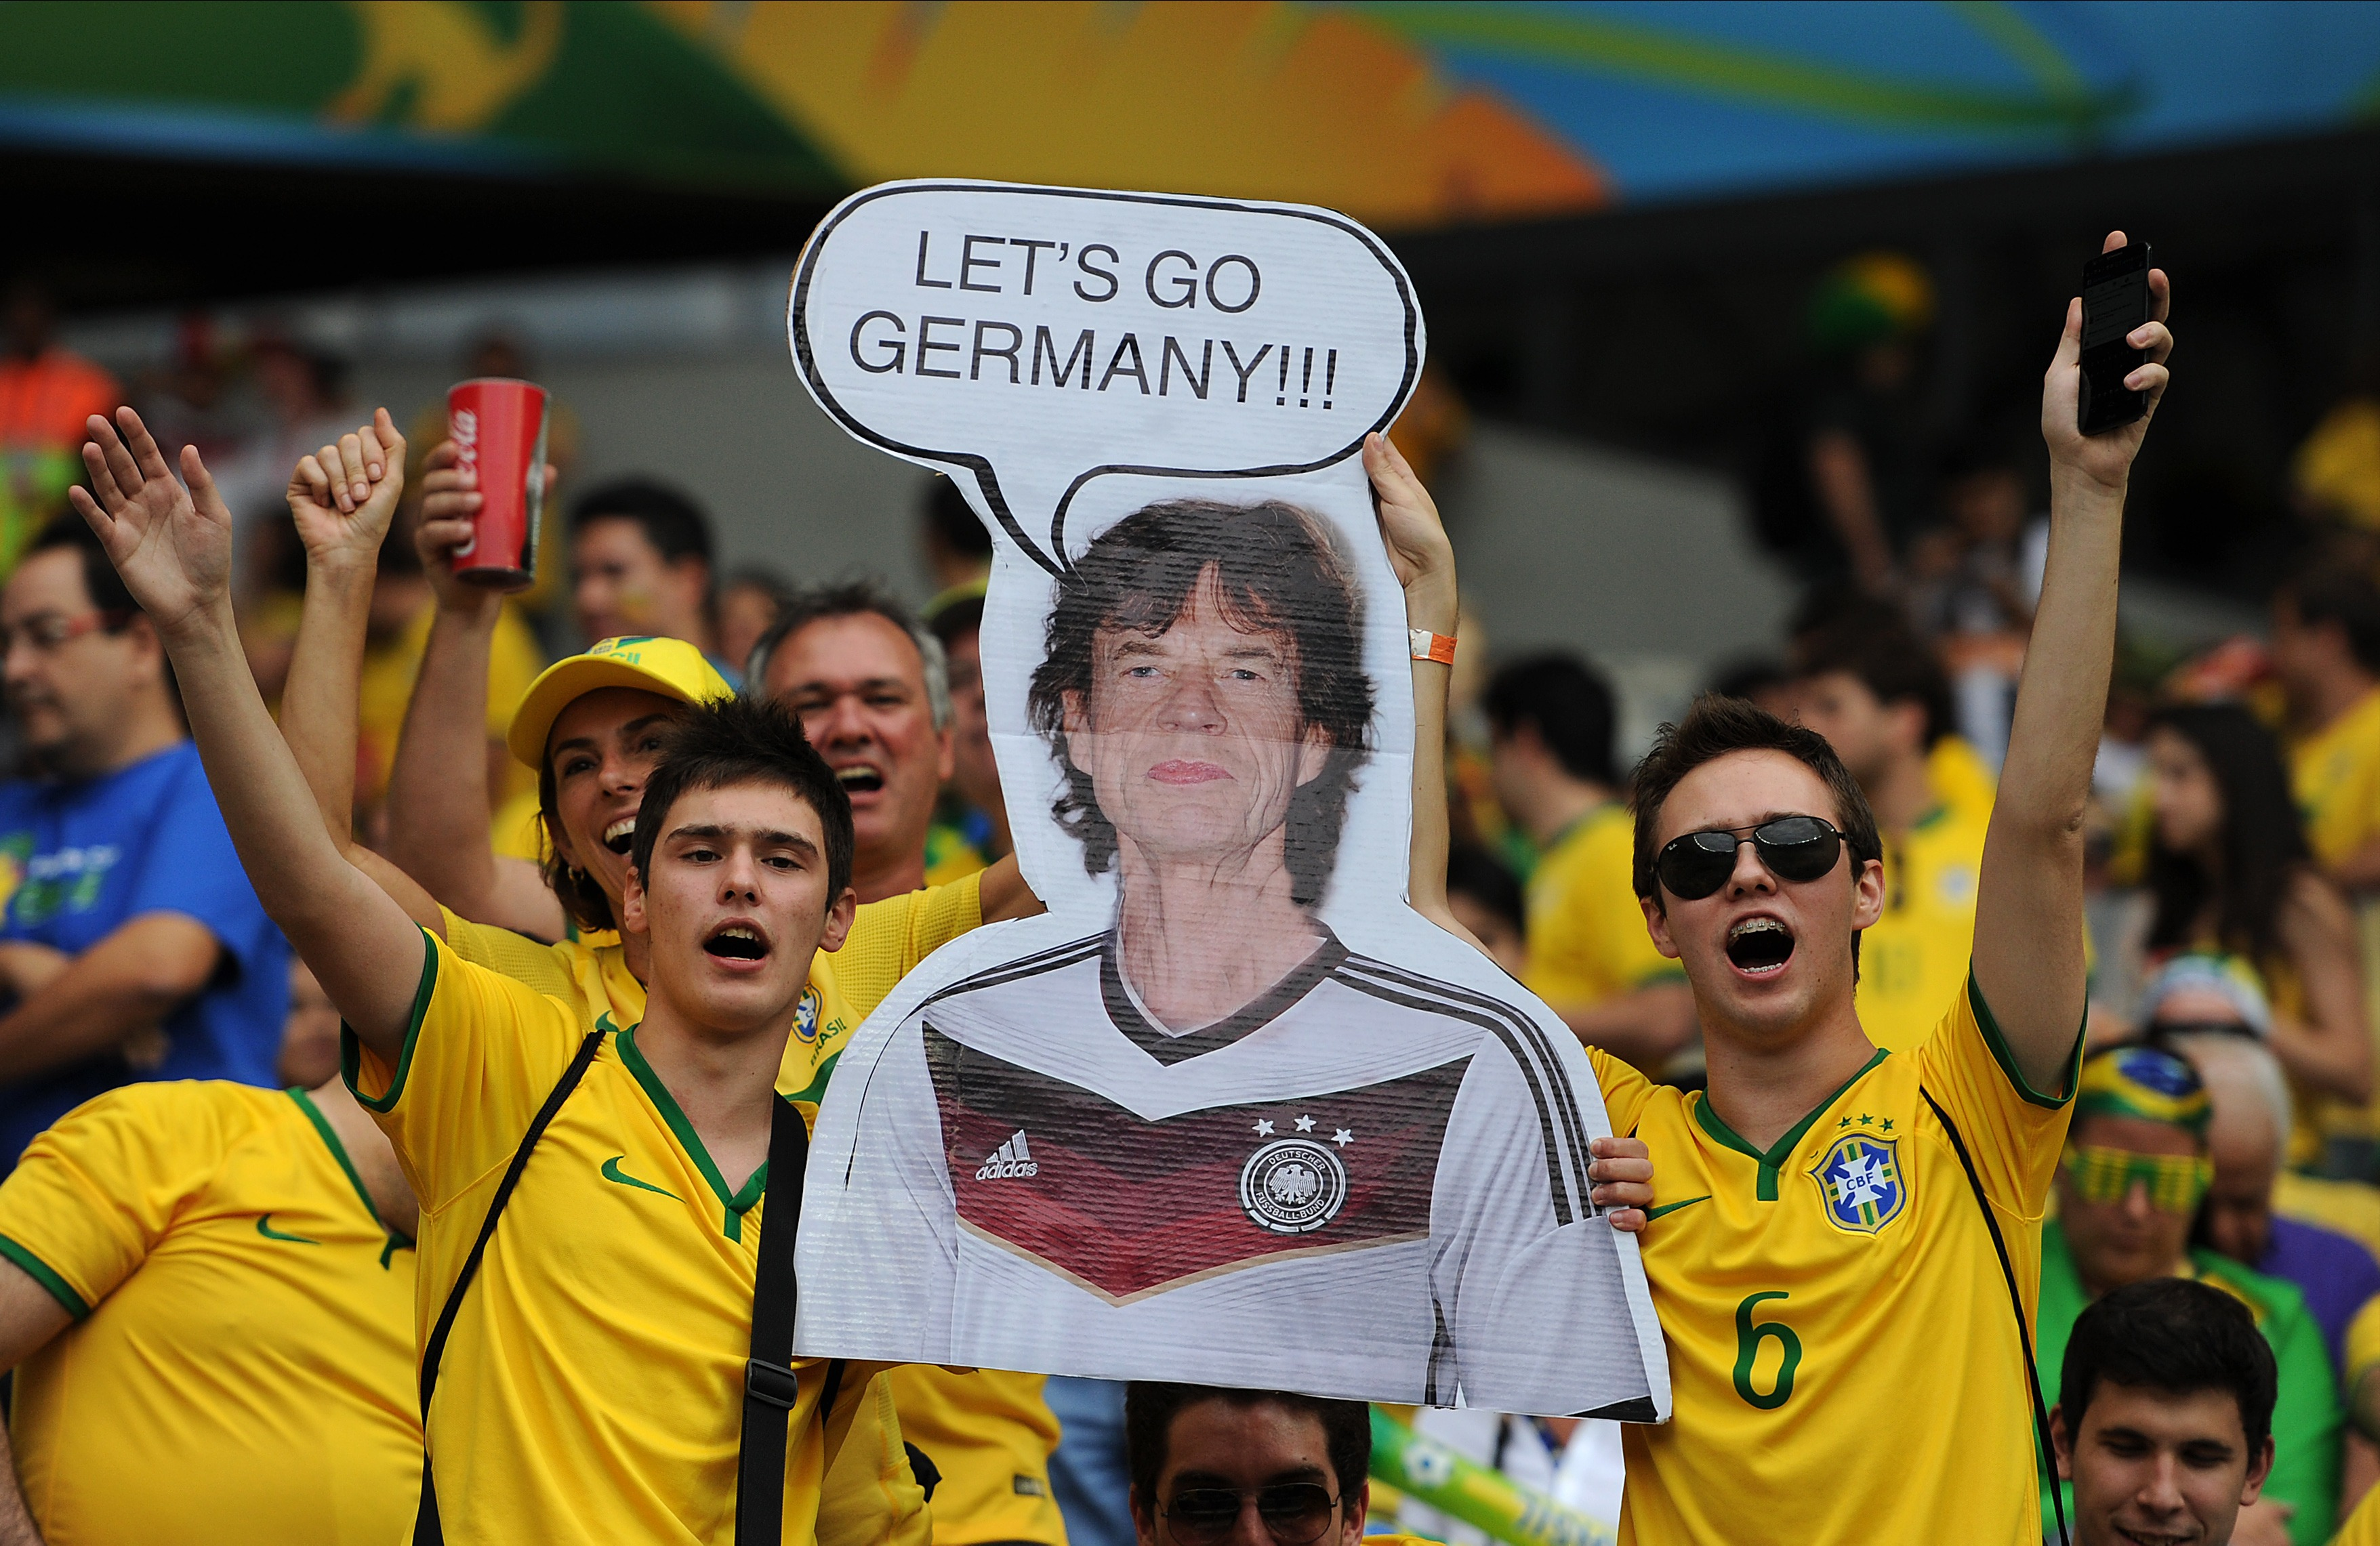 Brazil fans hold up a poster of Mick Jagger during the World Cup semifinal match between Brazil and Germany in Belo Horizonte, Brazil, on July 8, 2014